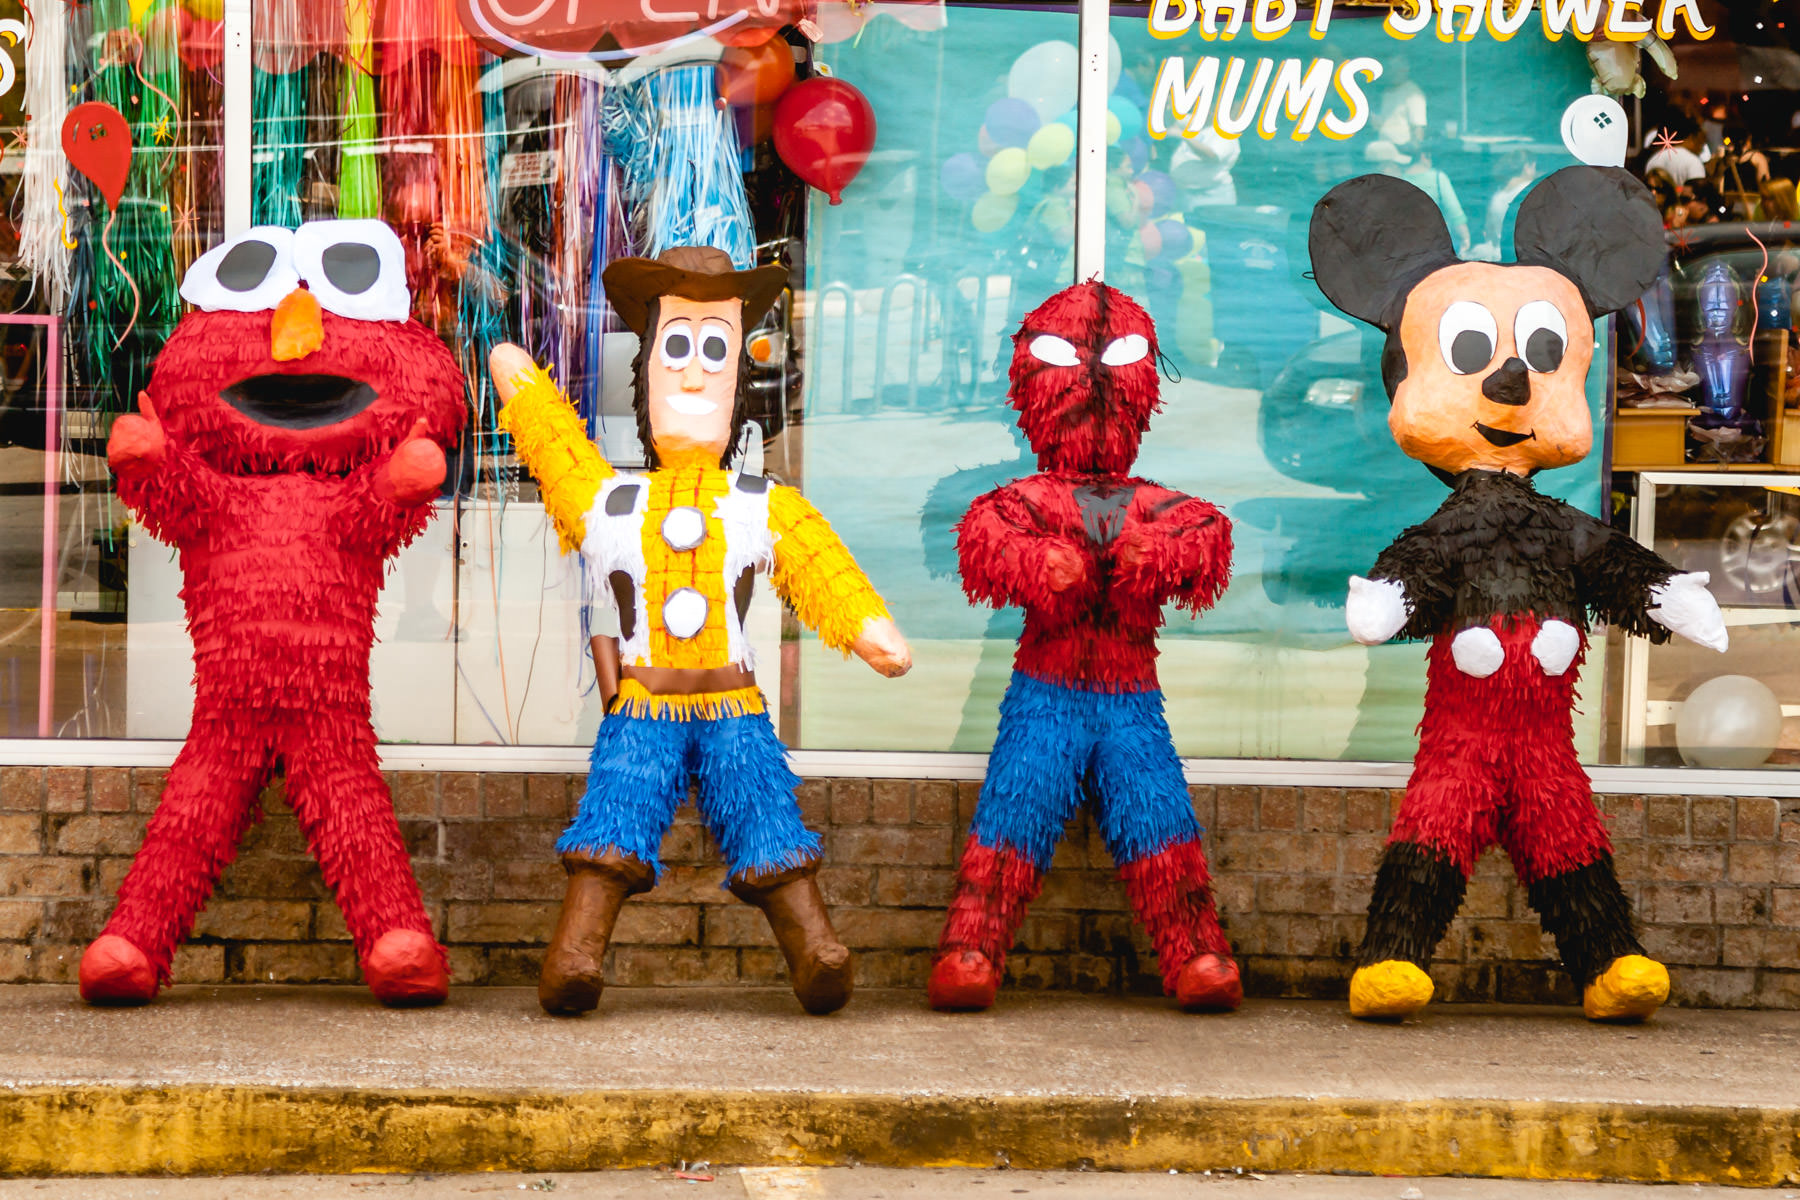 Piñatas depicting Elmo, Woody, Spiderman and Mickey Mouse spotted outside a shop in Oak Cliff, Dallas.